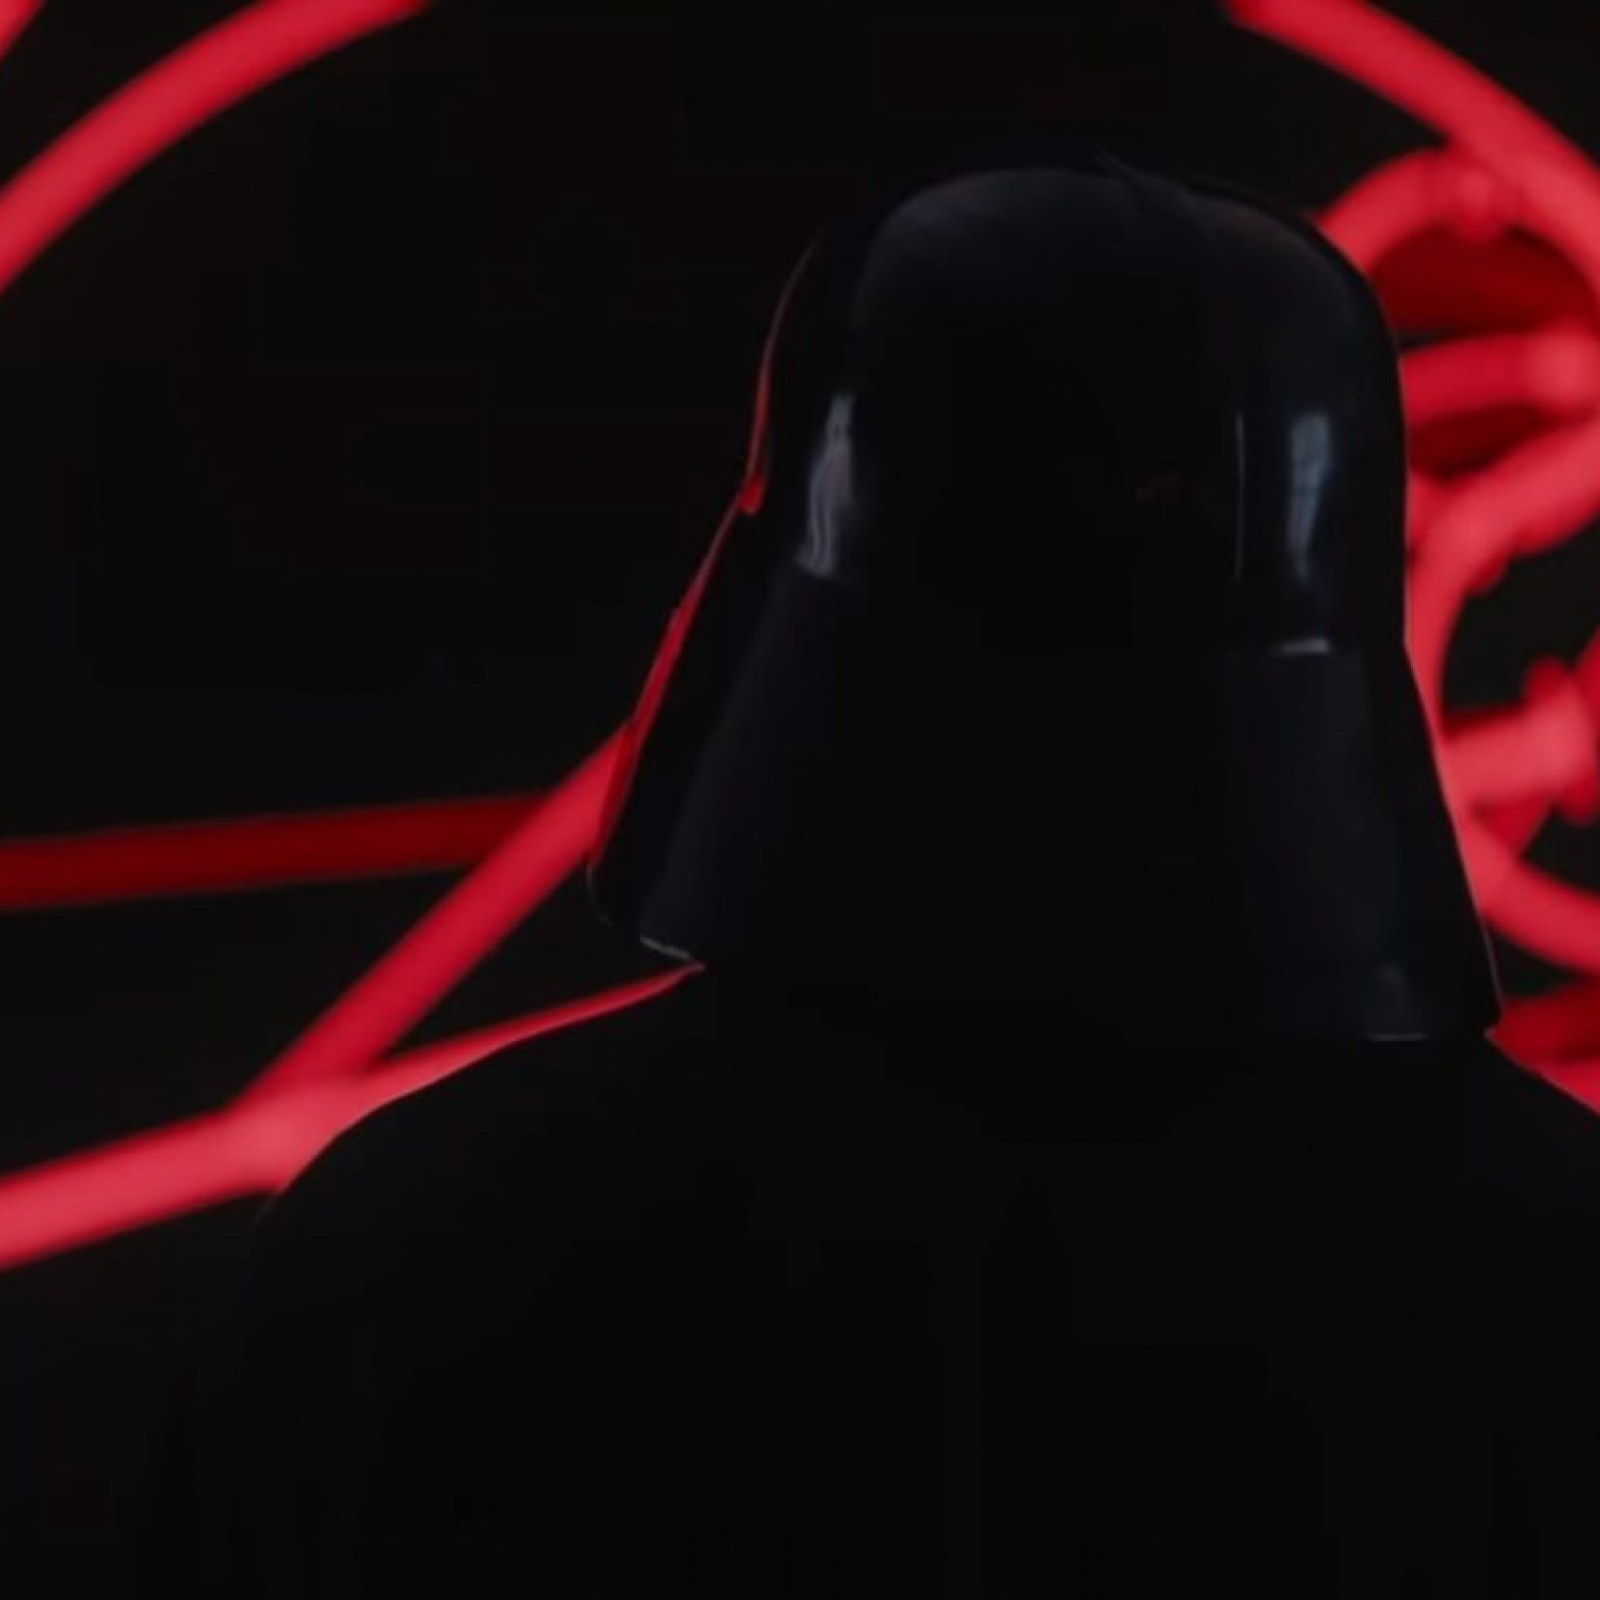 Watch Darth Vader Returns In New Rogue One A Star Wars Story